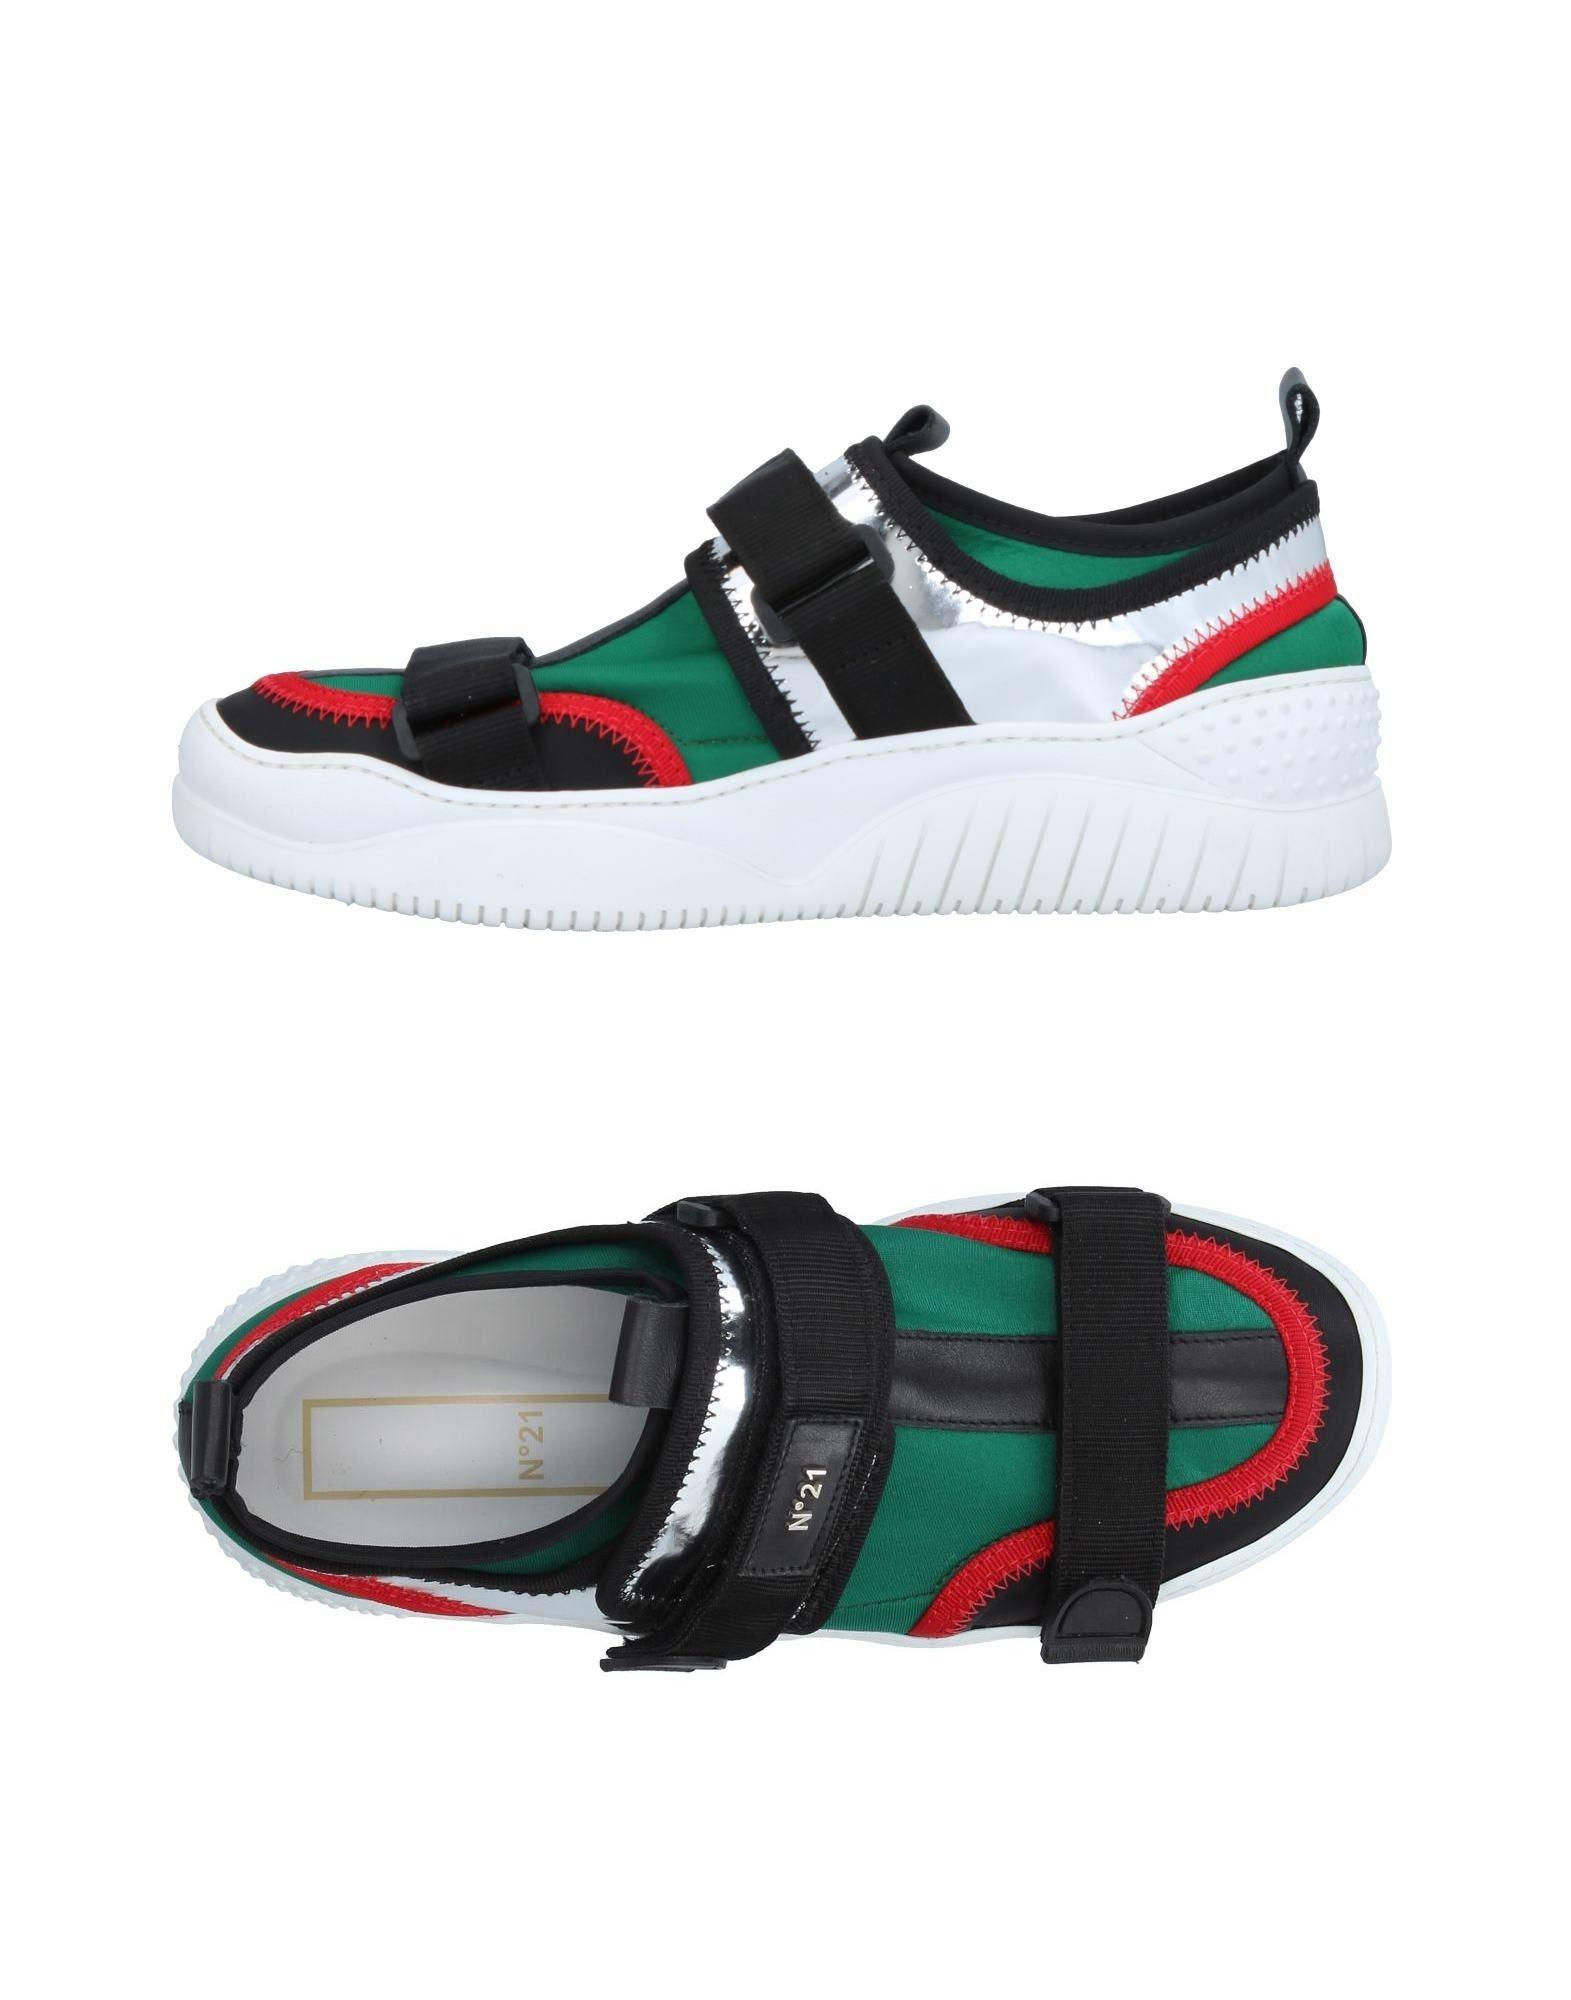 Free Shipping Low Shipping Fee FOOTWEAR - Low-tops & sneakers N°21 Clearance Professional Visit Cheap Price Countdown Package Cheap Price 100% Guaranteed Cheap Price JZtub1dFq